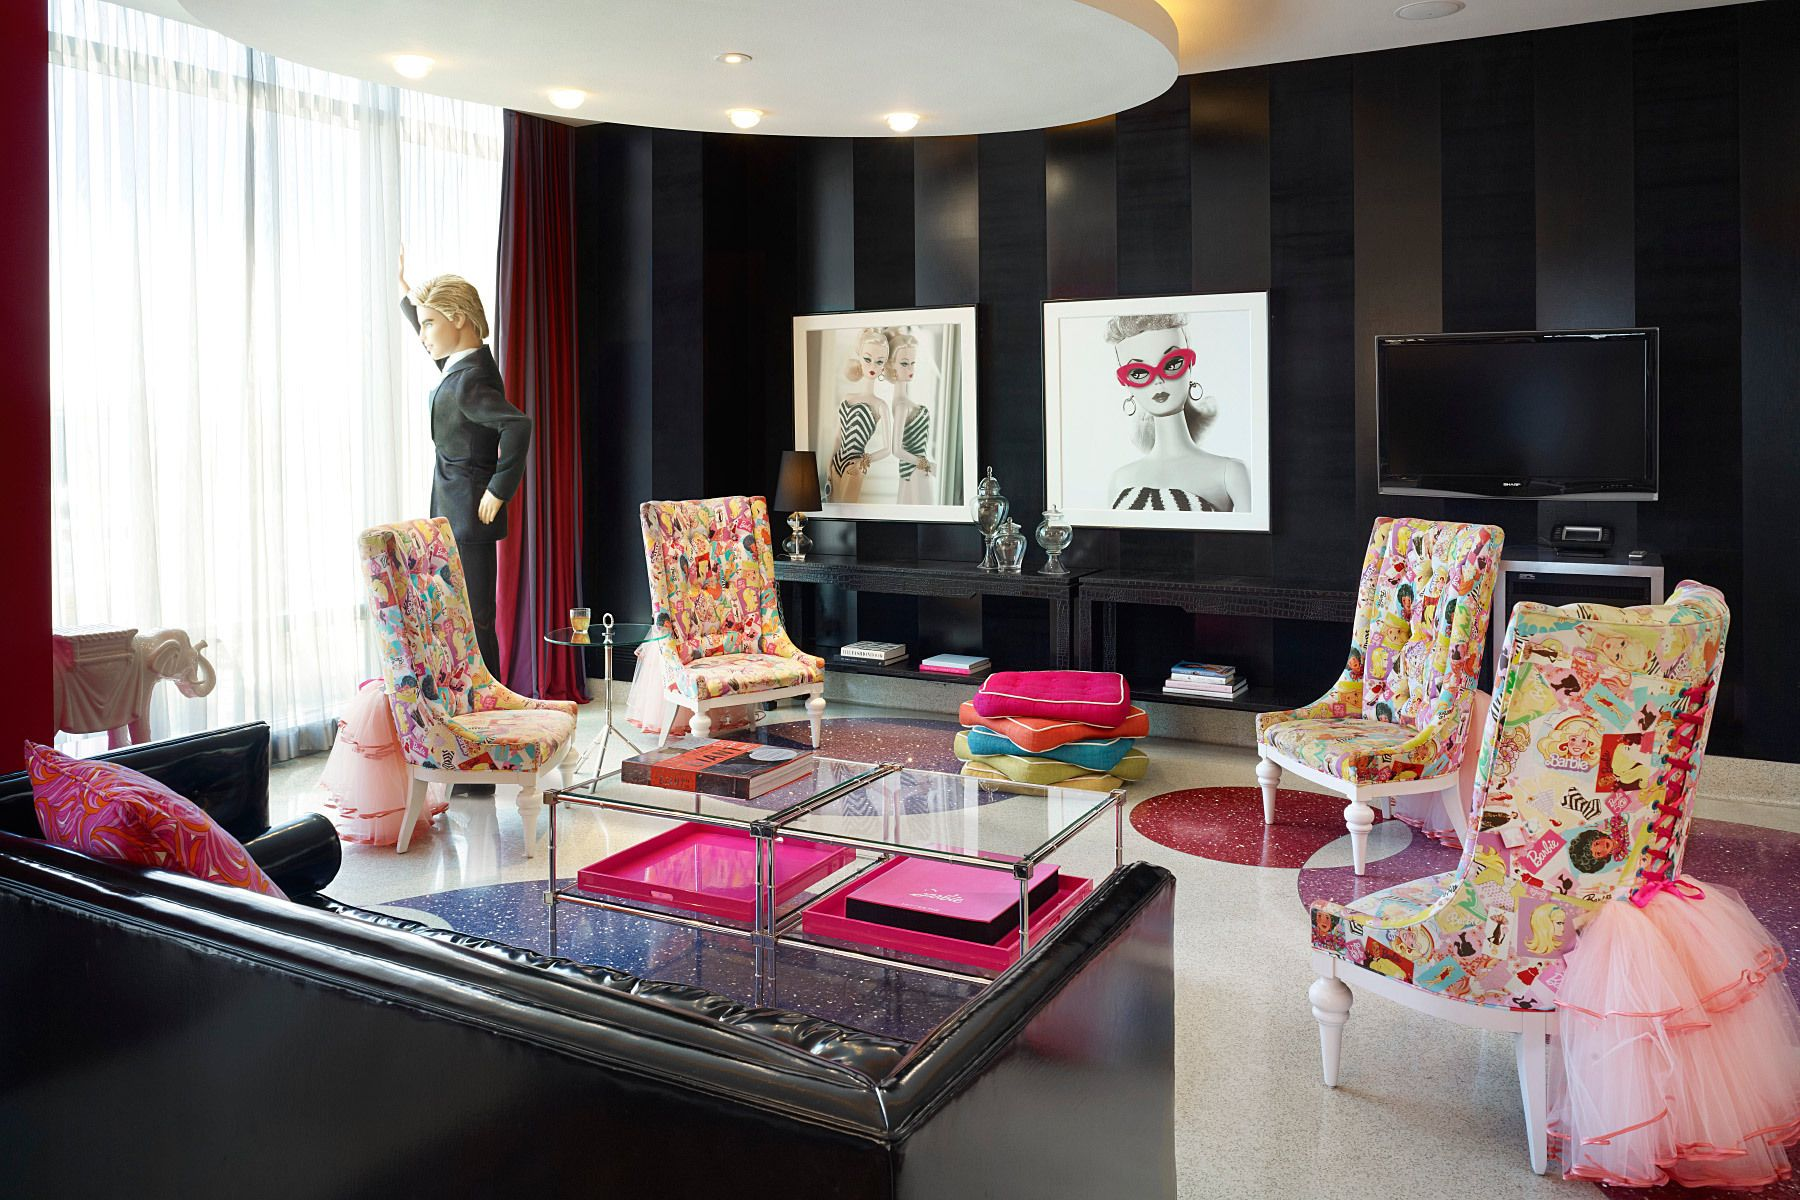 55 and over living in las vegas - The Barbie Suite At The Palms In Las Vegas